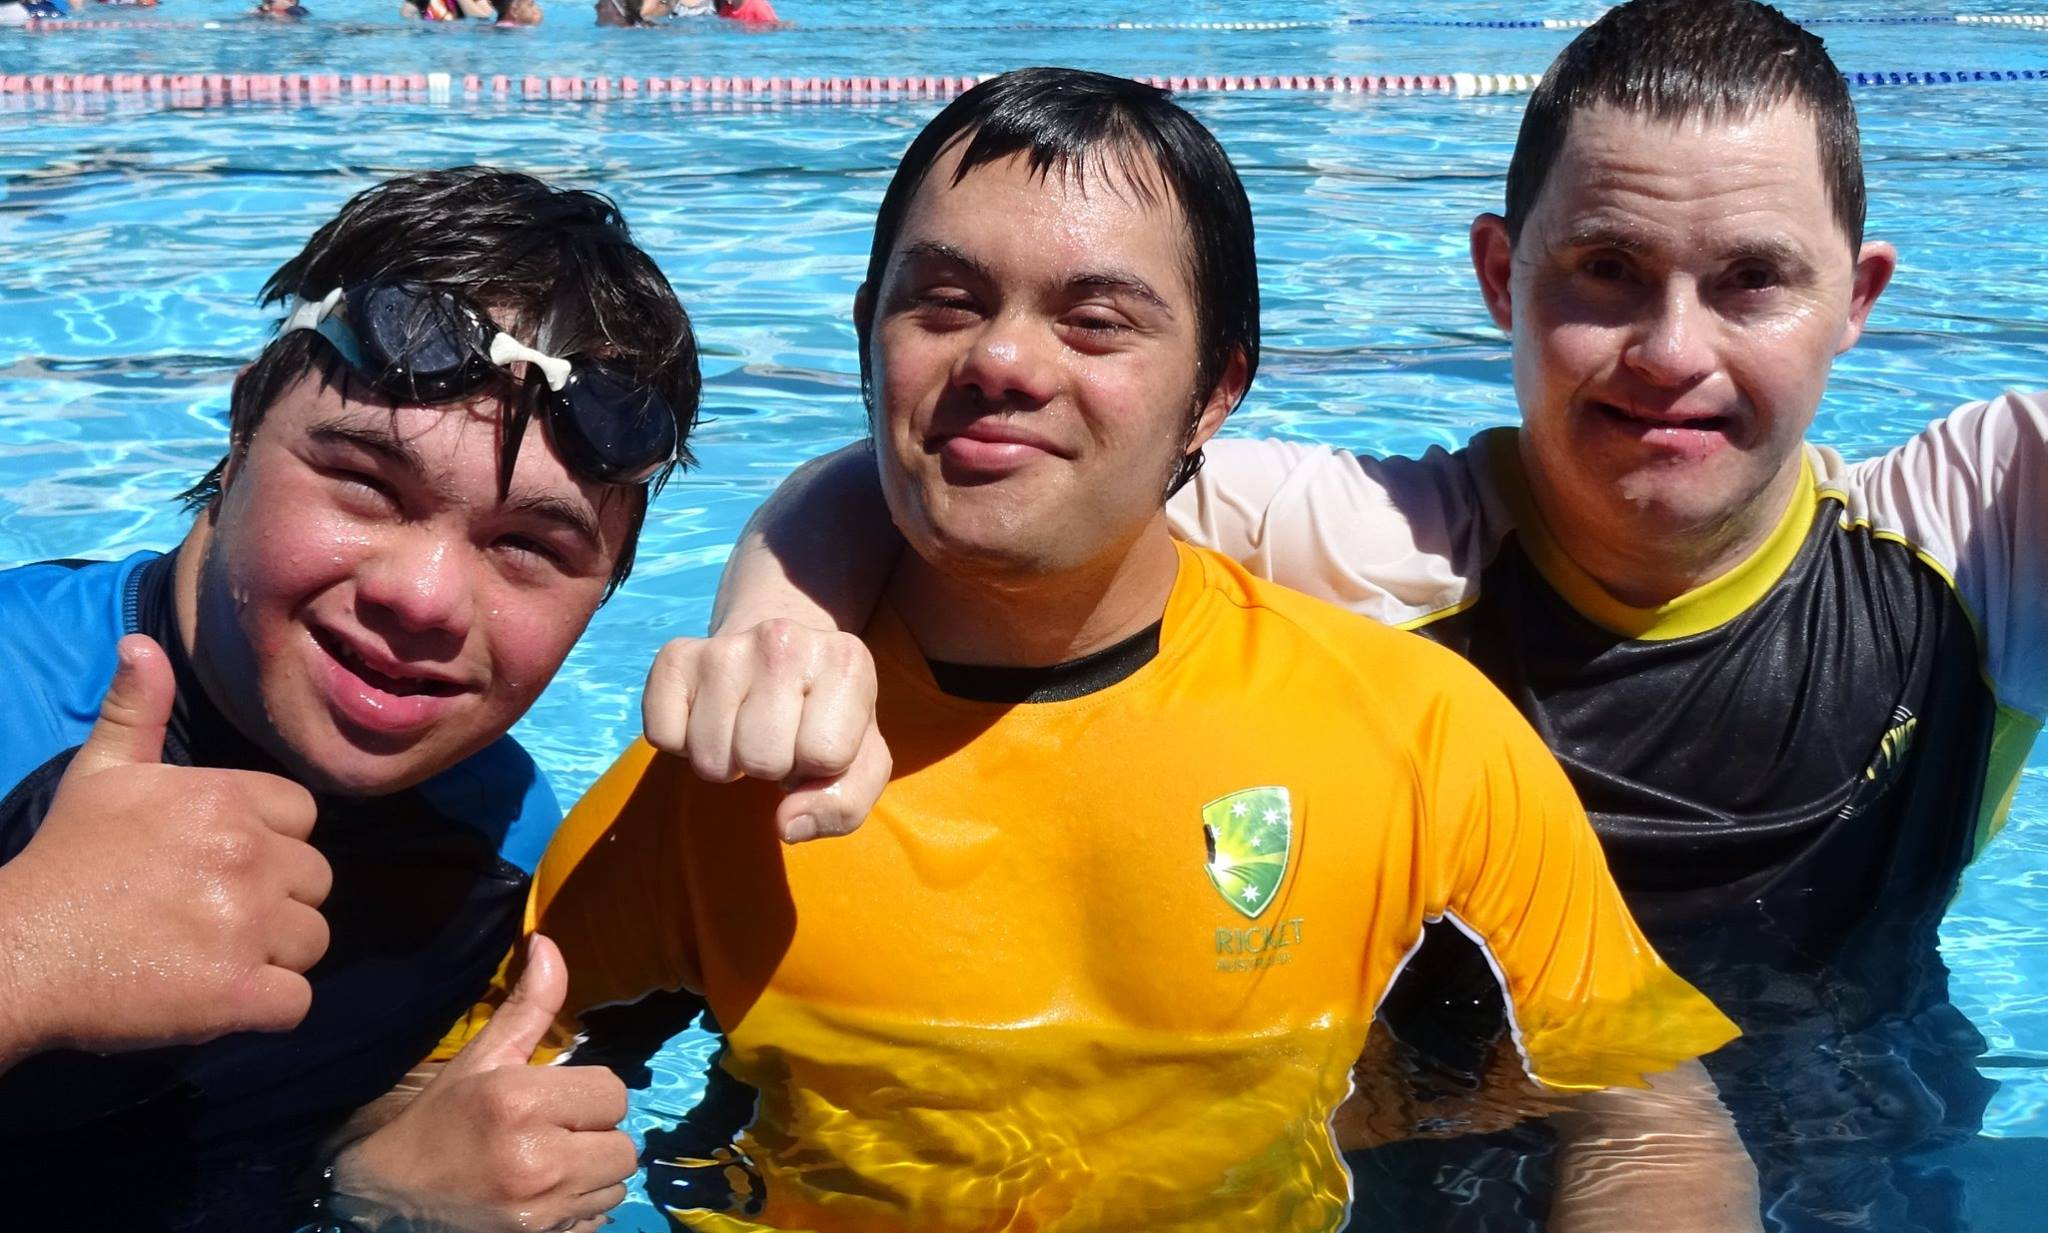 Say hi to Ross, Dion and Andrew. The pool has just reopened for the season and the guys were pretty happy to be back there today.